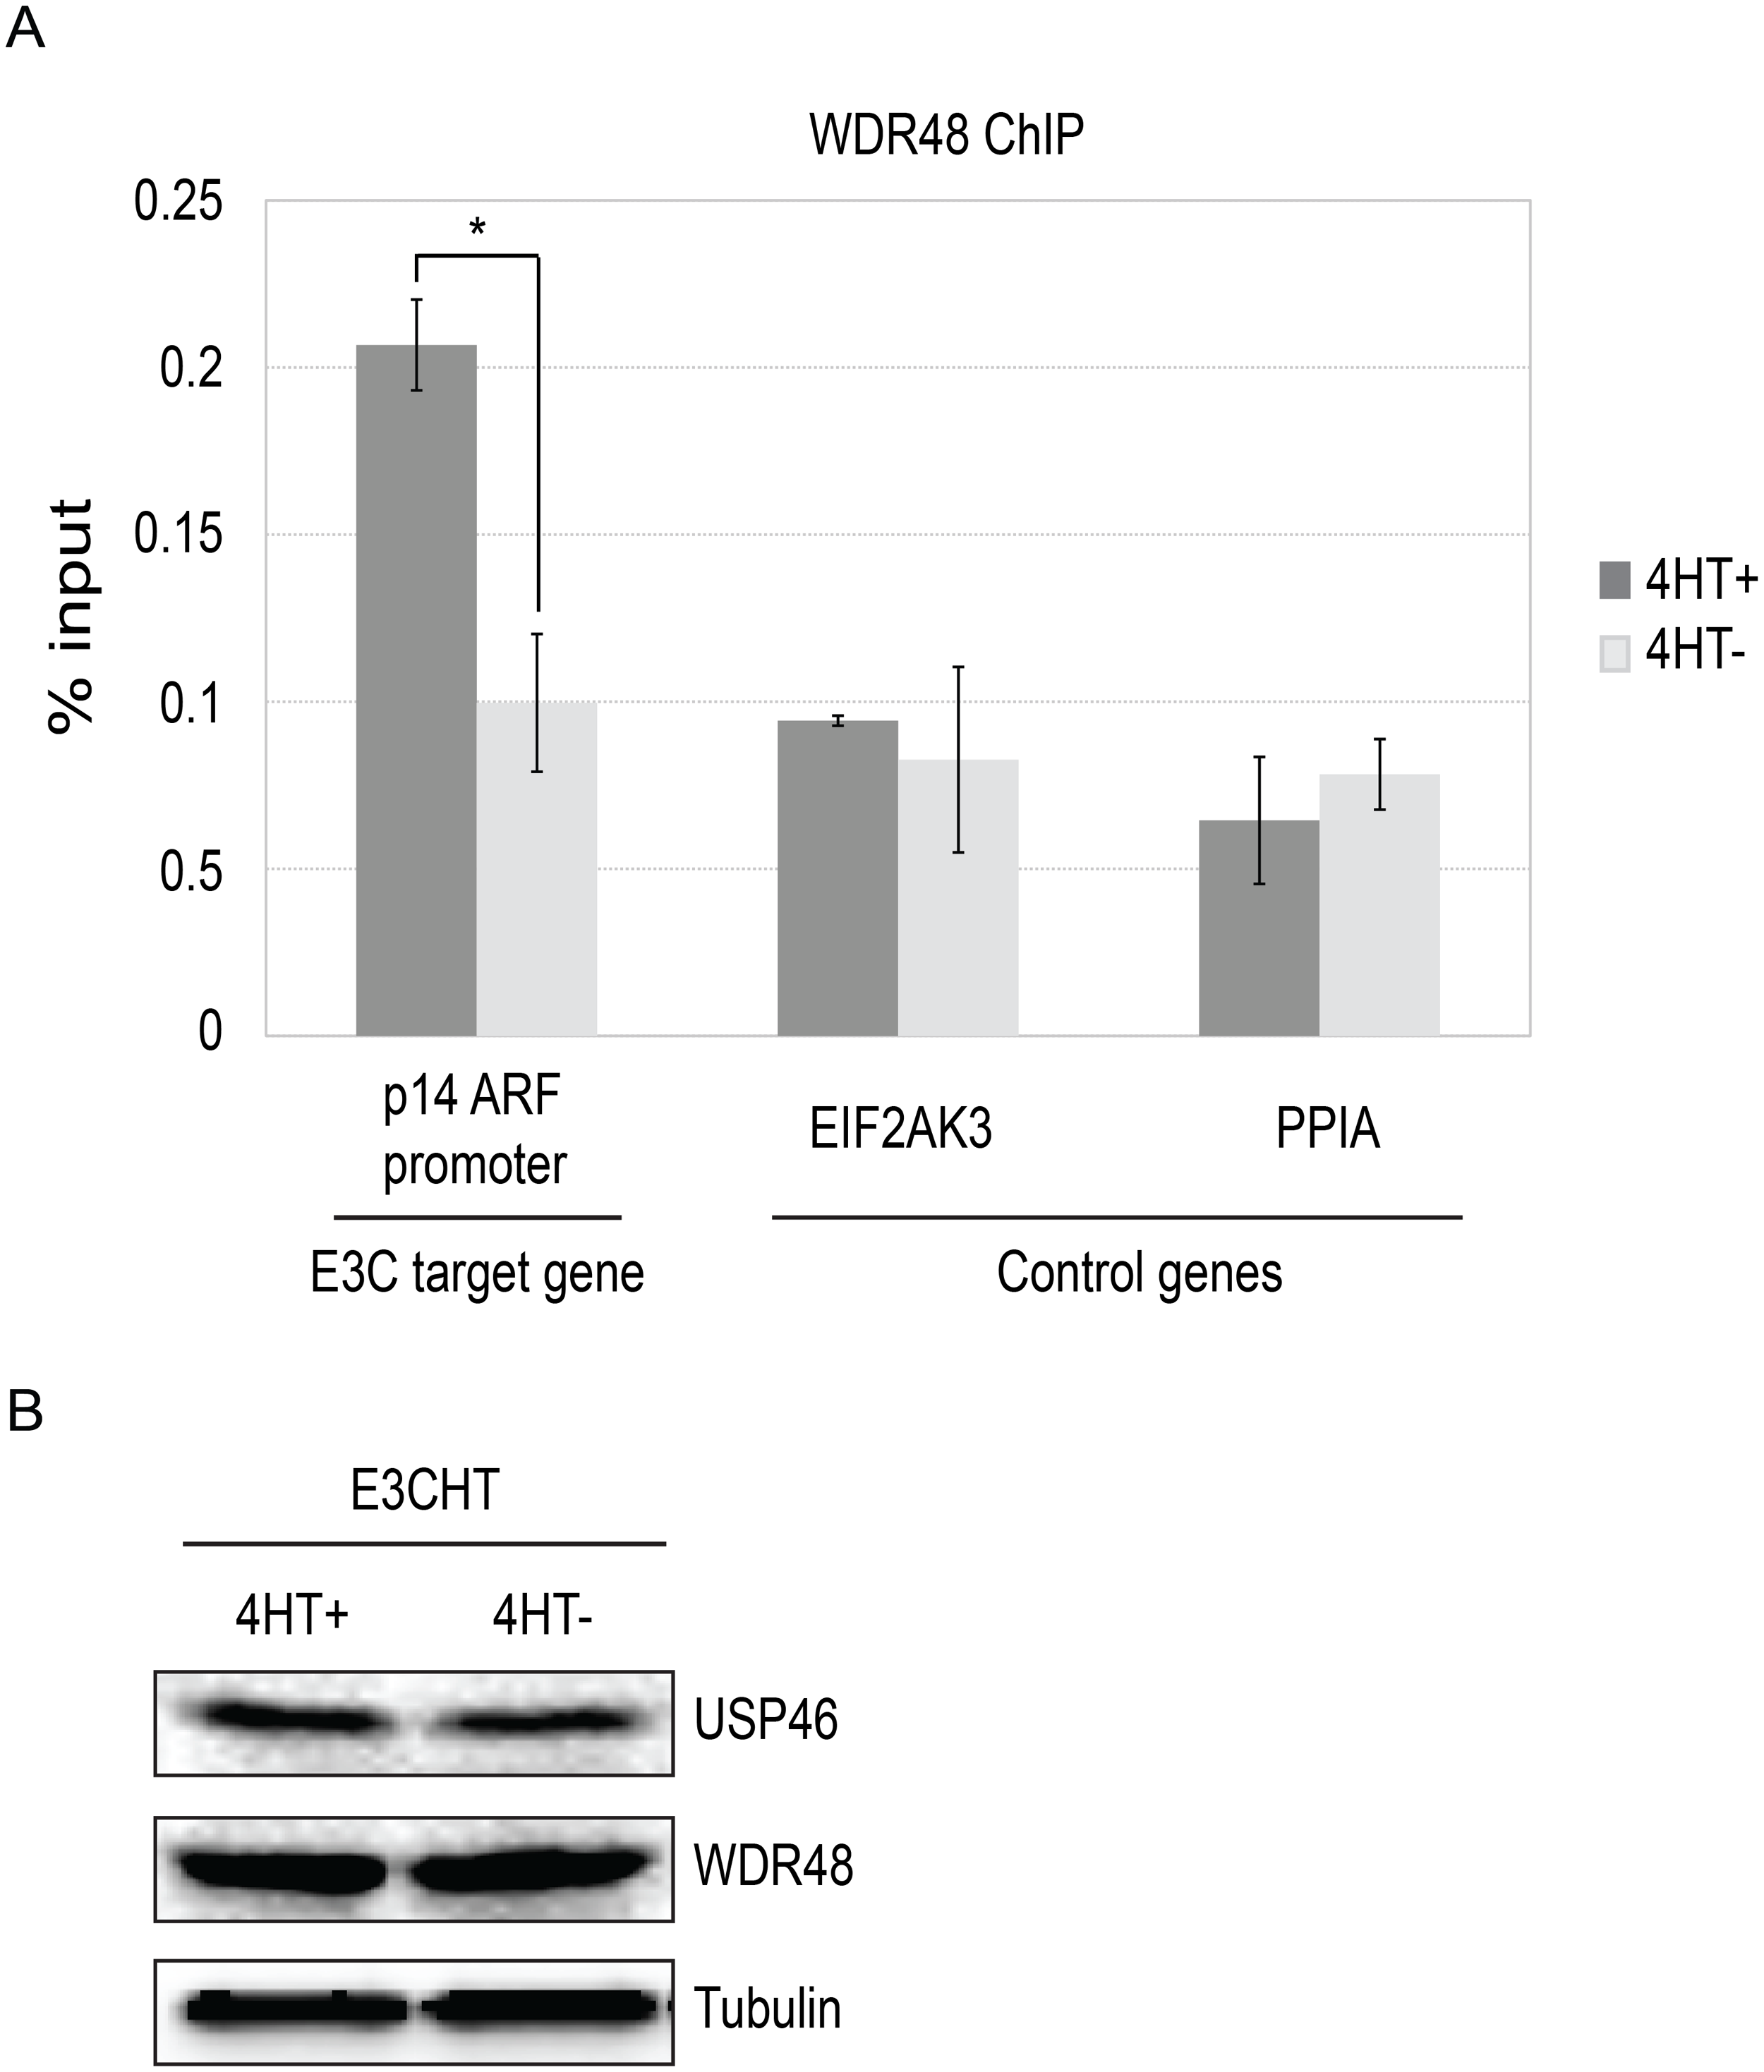 ChIP assay for WDR48 at the p14ARF promoter.